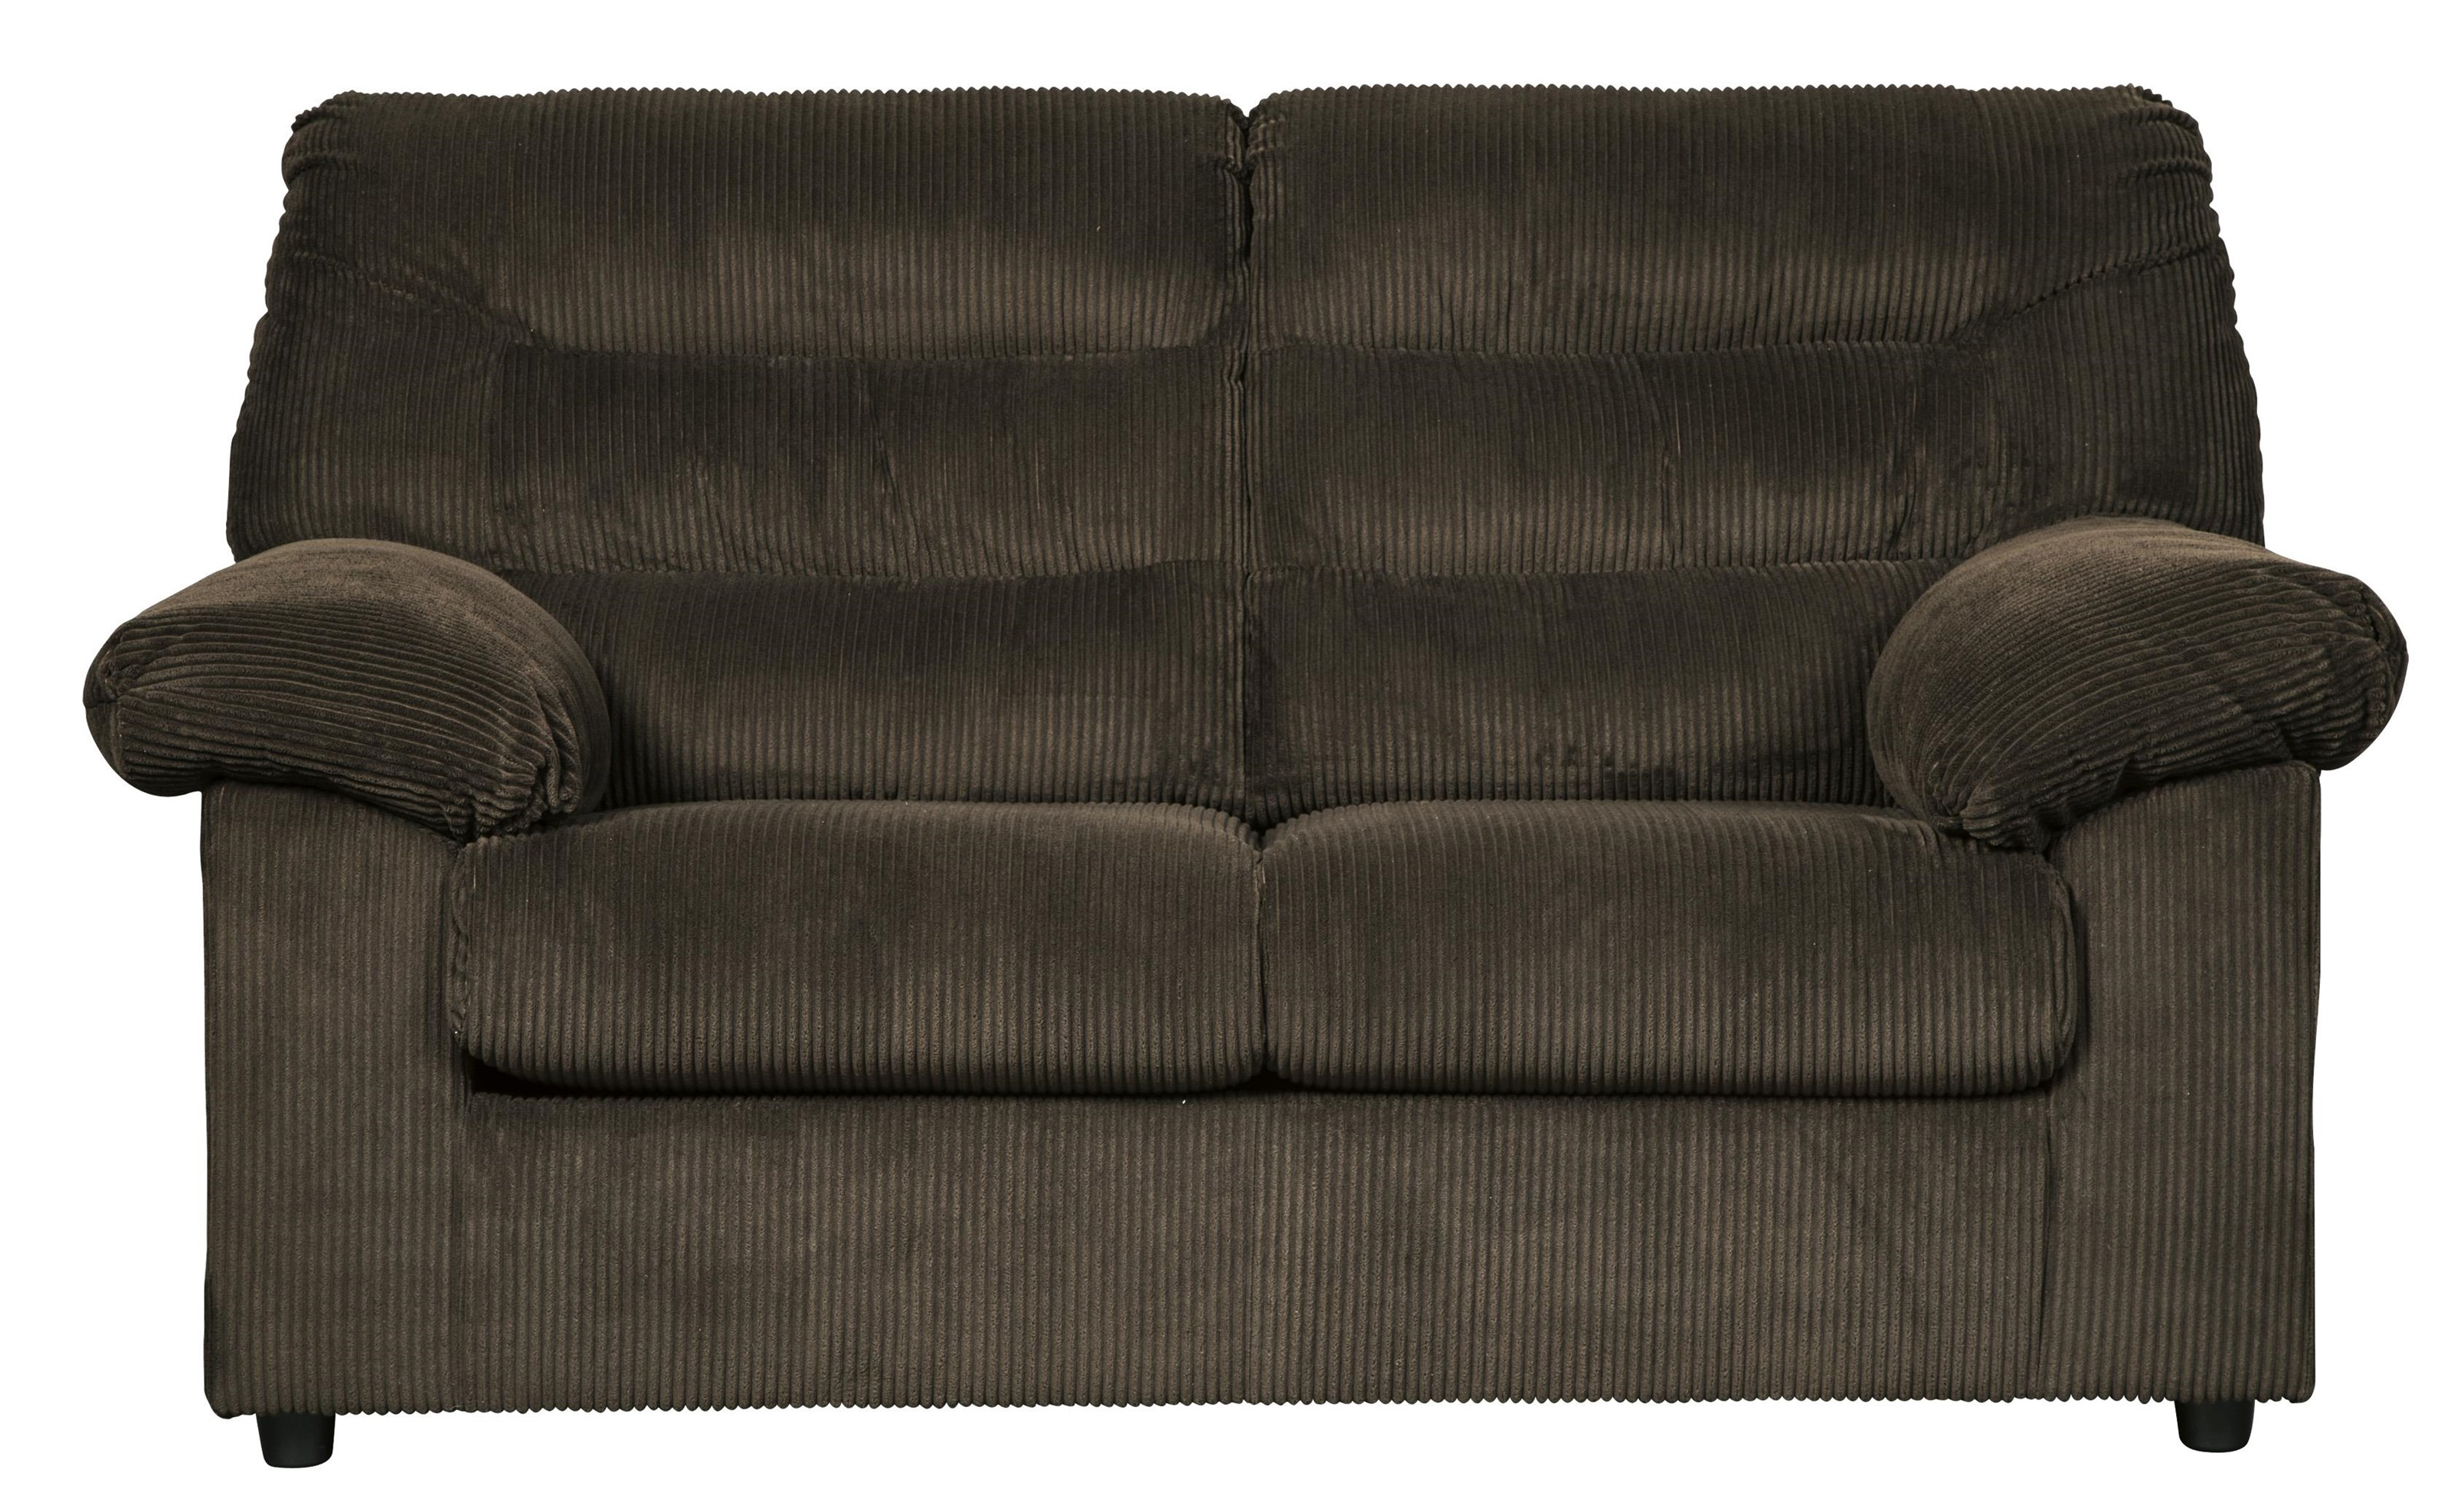 Gosnell Contemporary Love Seat by Signature Design by Ashley at Westrich Furniture & Appliances